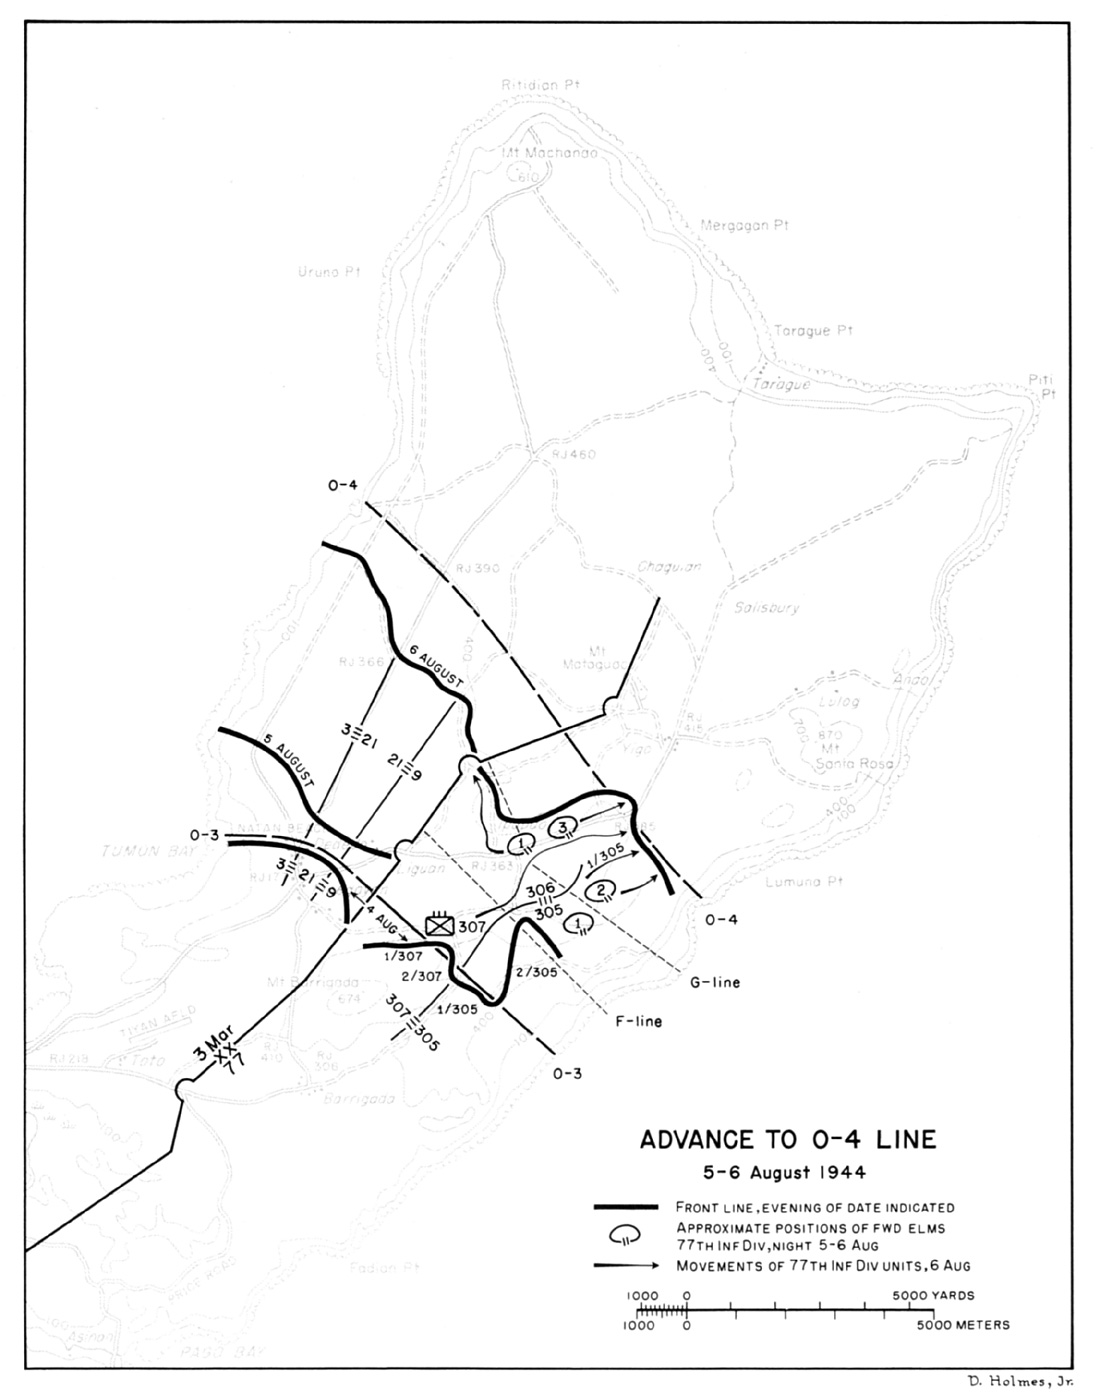 Hyperwar Us Army In Wwii Campaign The Marianas 69 Camaro Fuel Gauge Wiring Diagram Advance To O 4 Line 5 6 August 1944